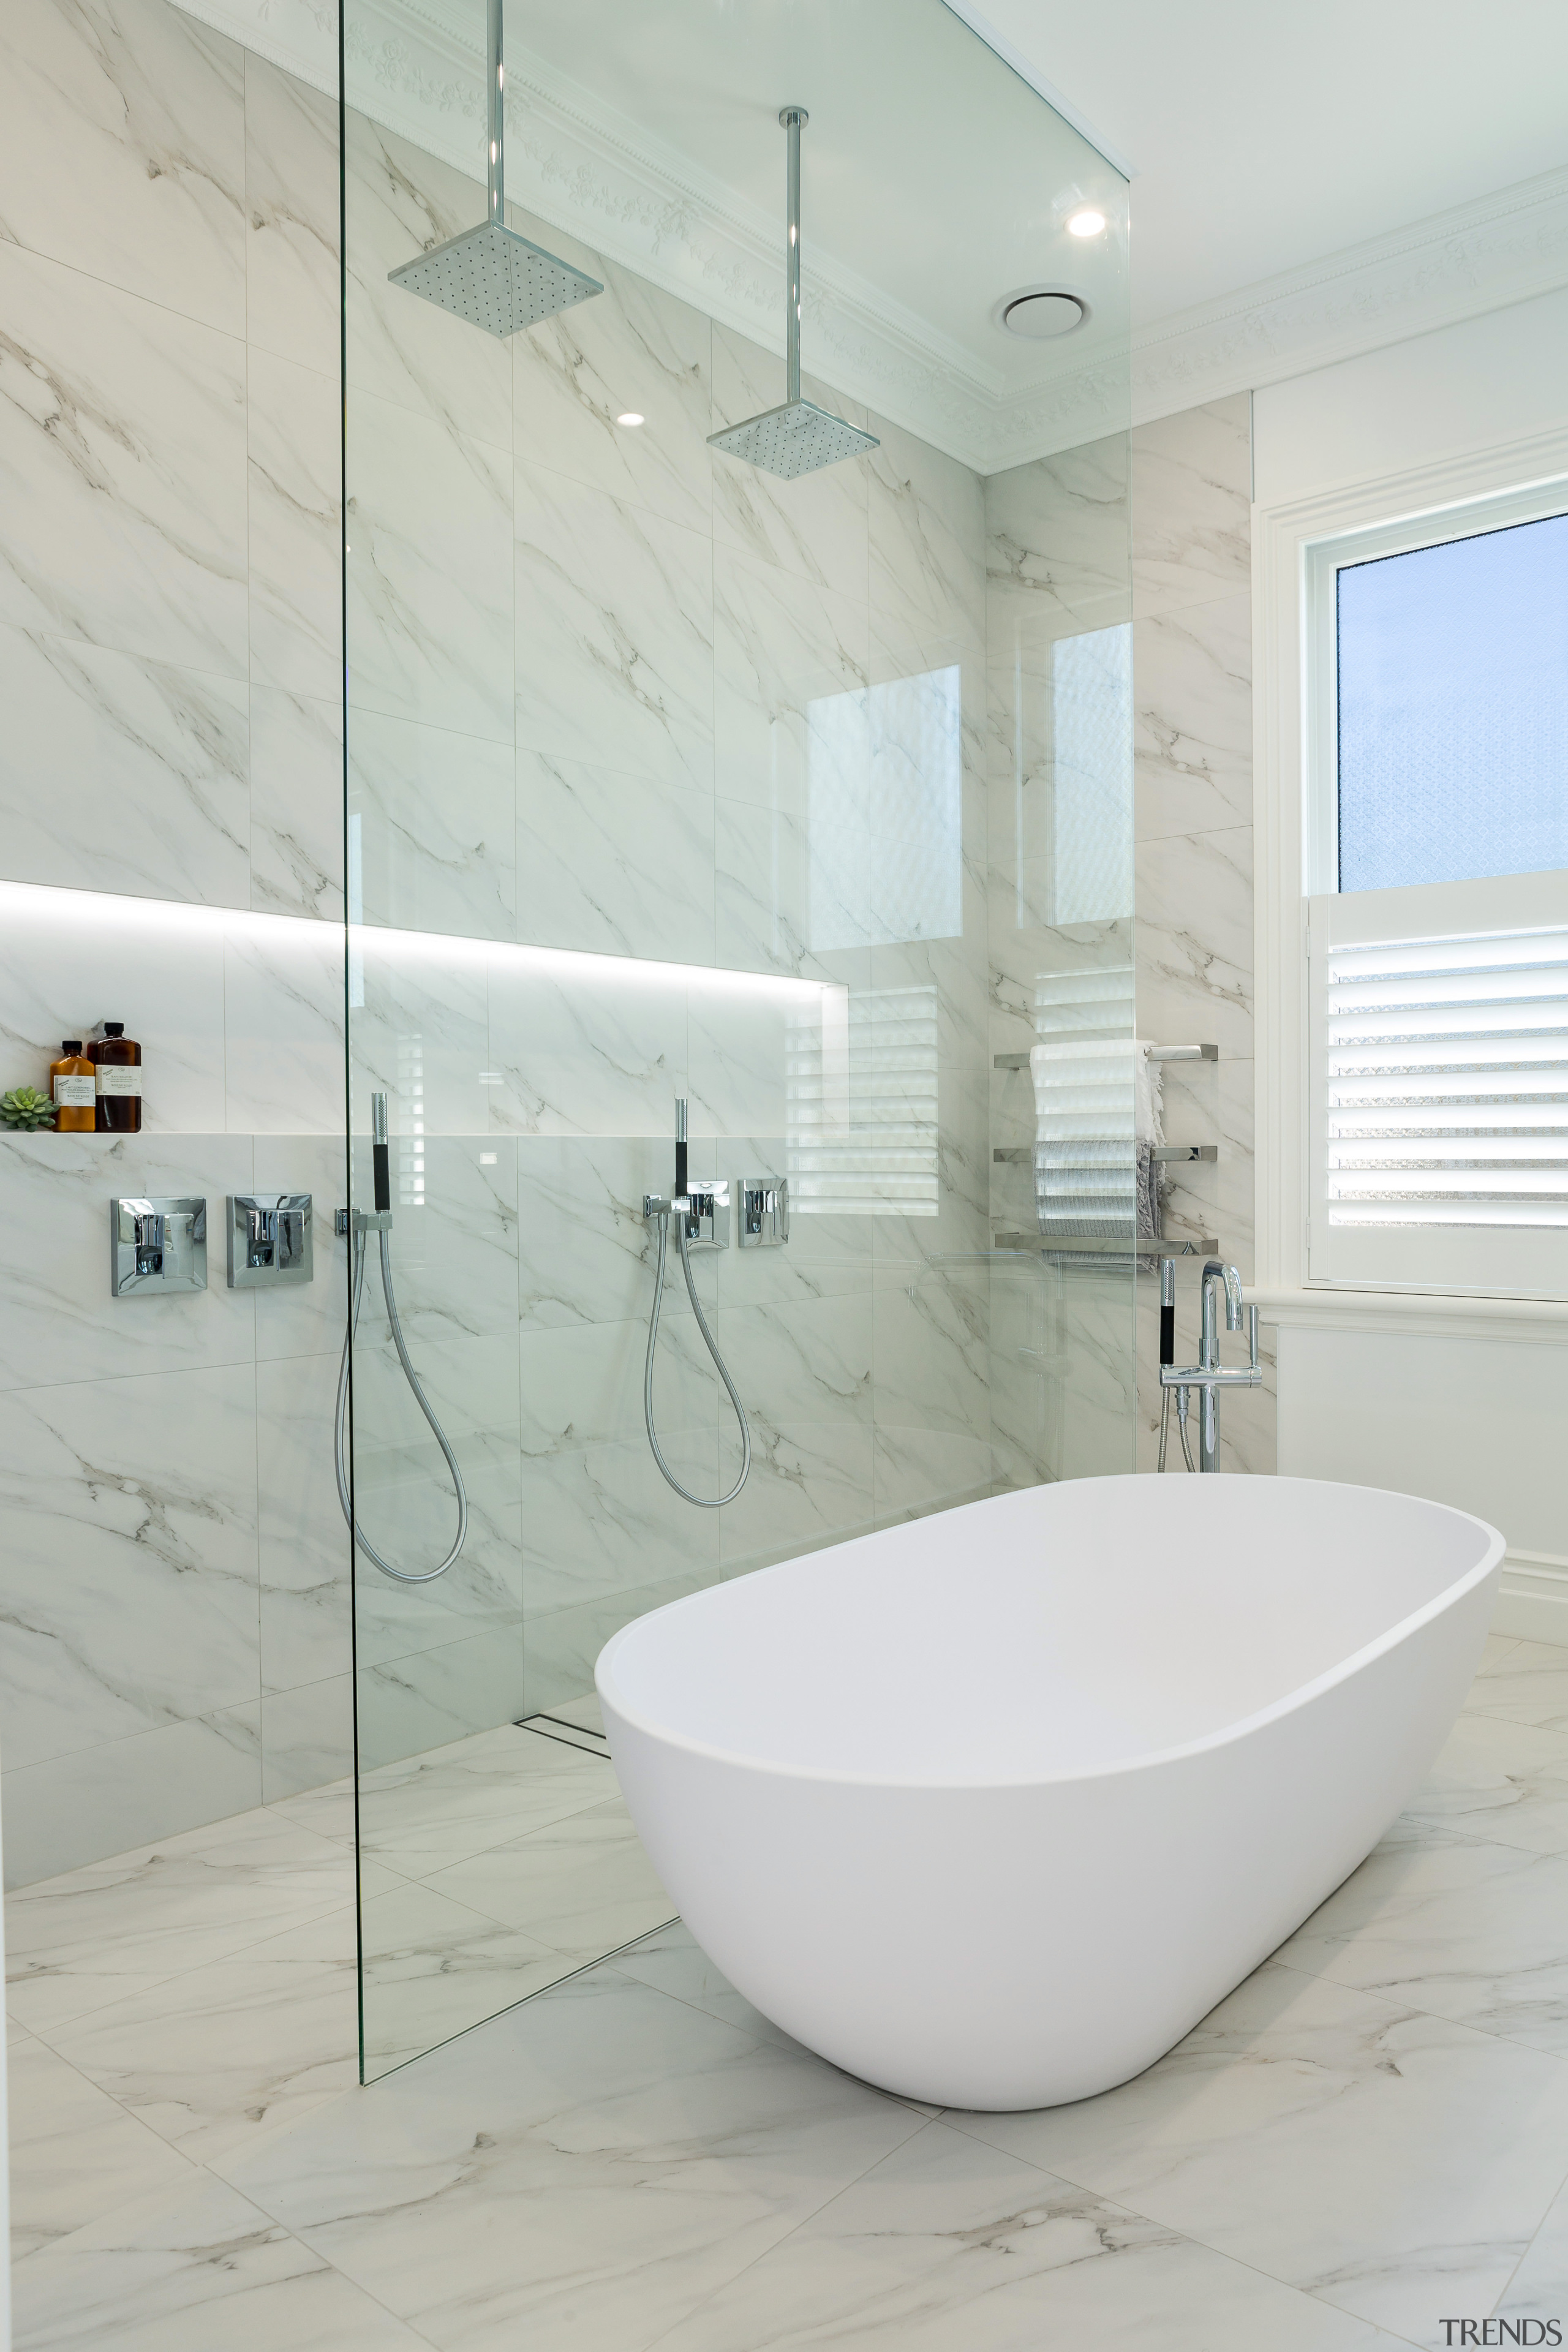 A strip floor drain contributes to the luxurious y... | Trends